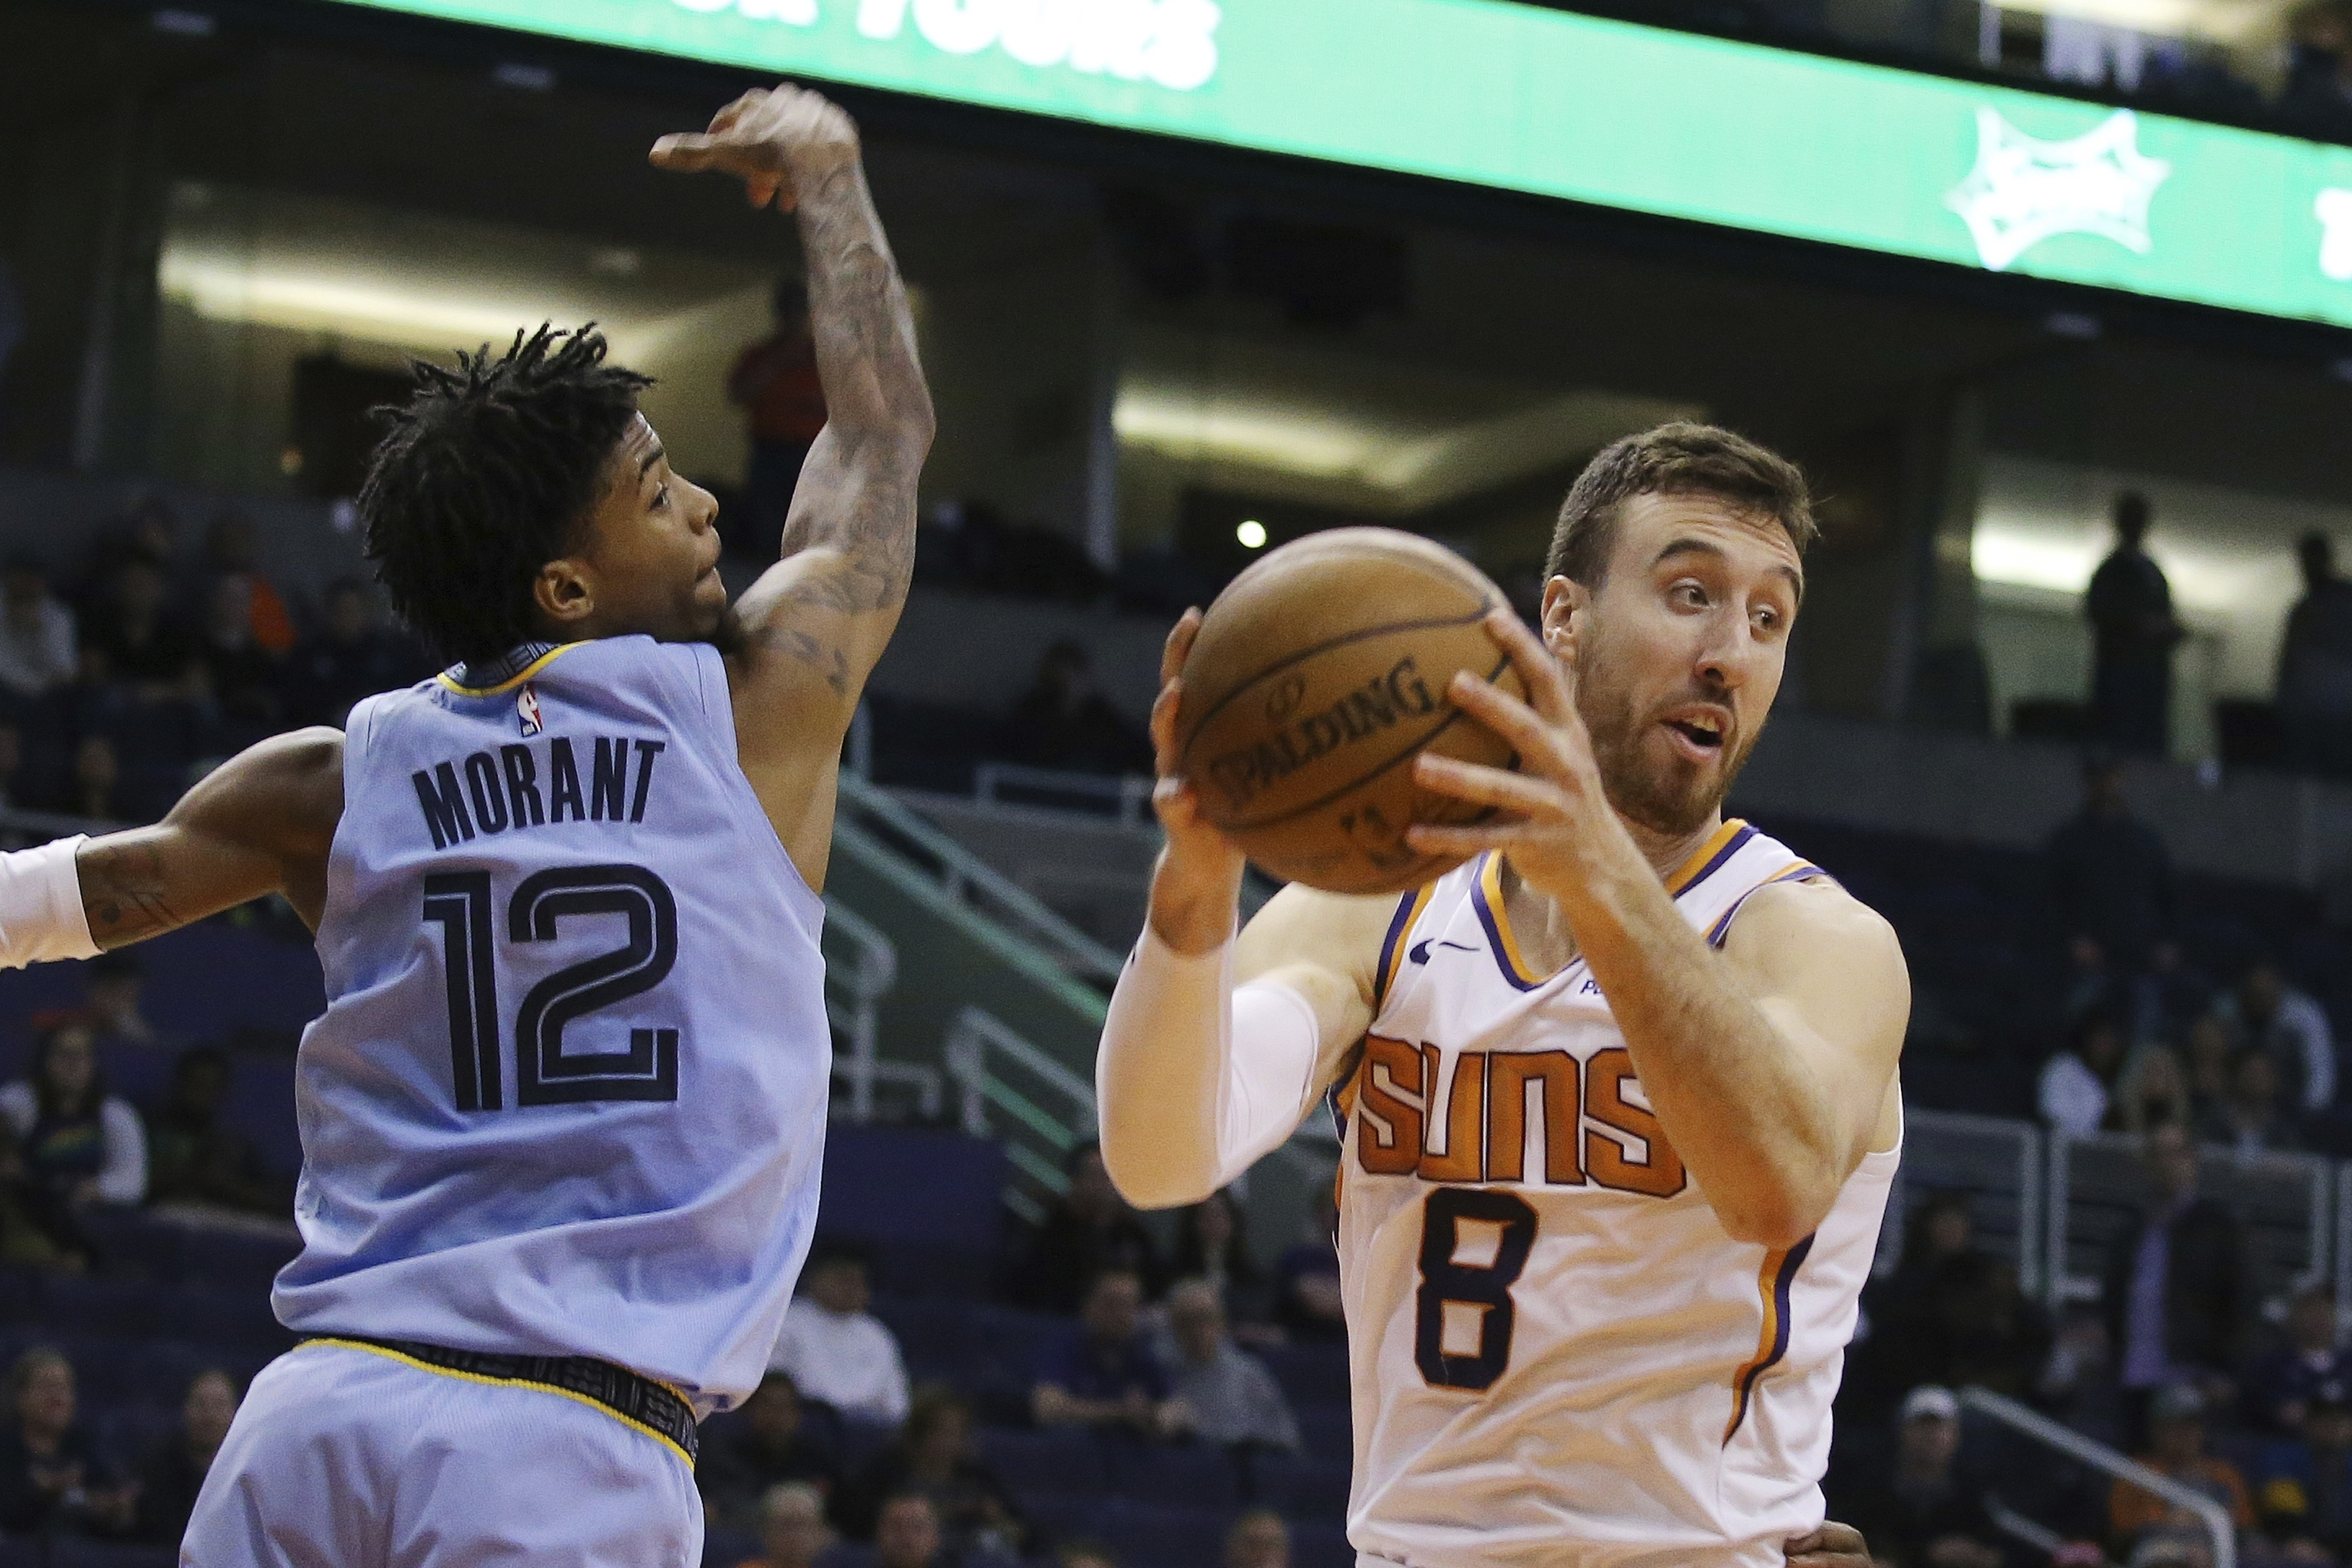 Suns forward Frank Kaminsky out with knee injury